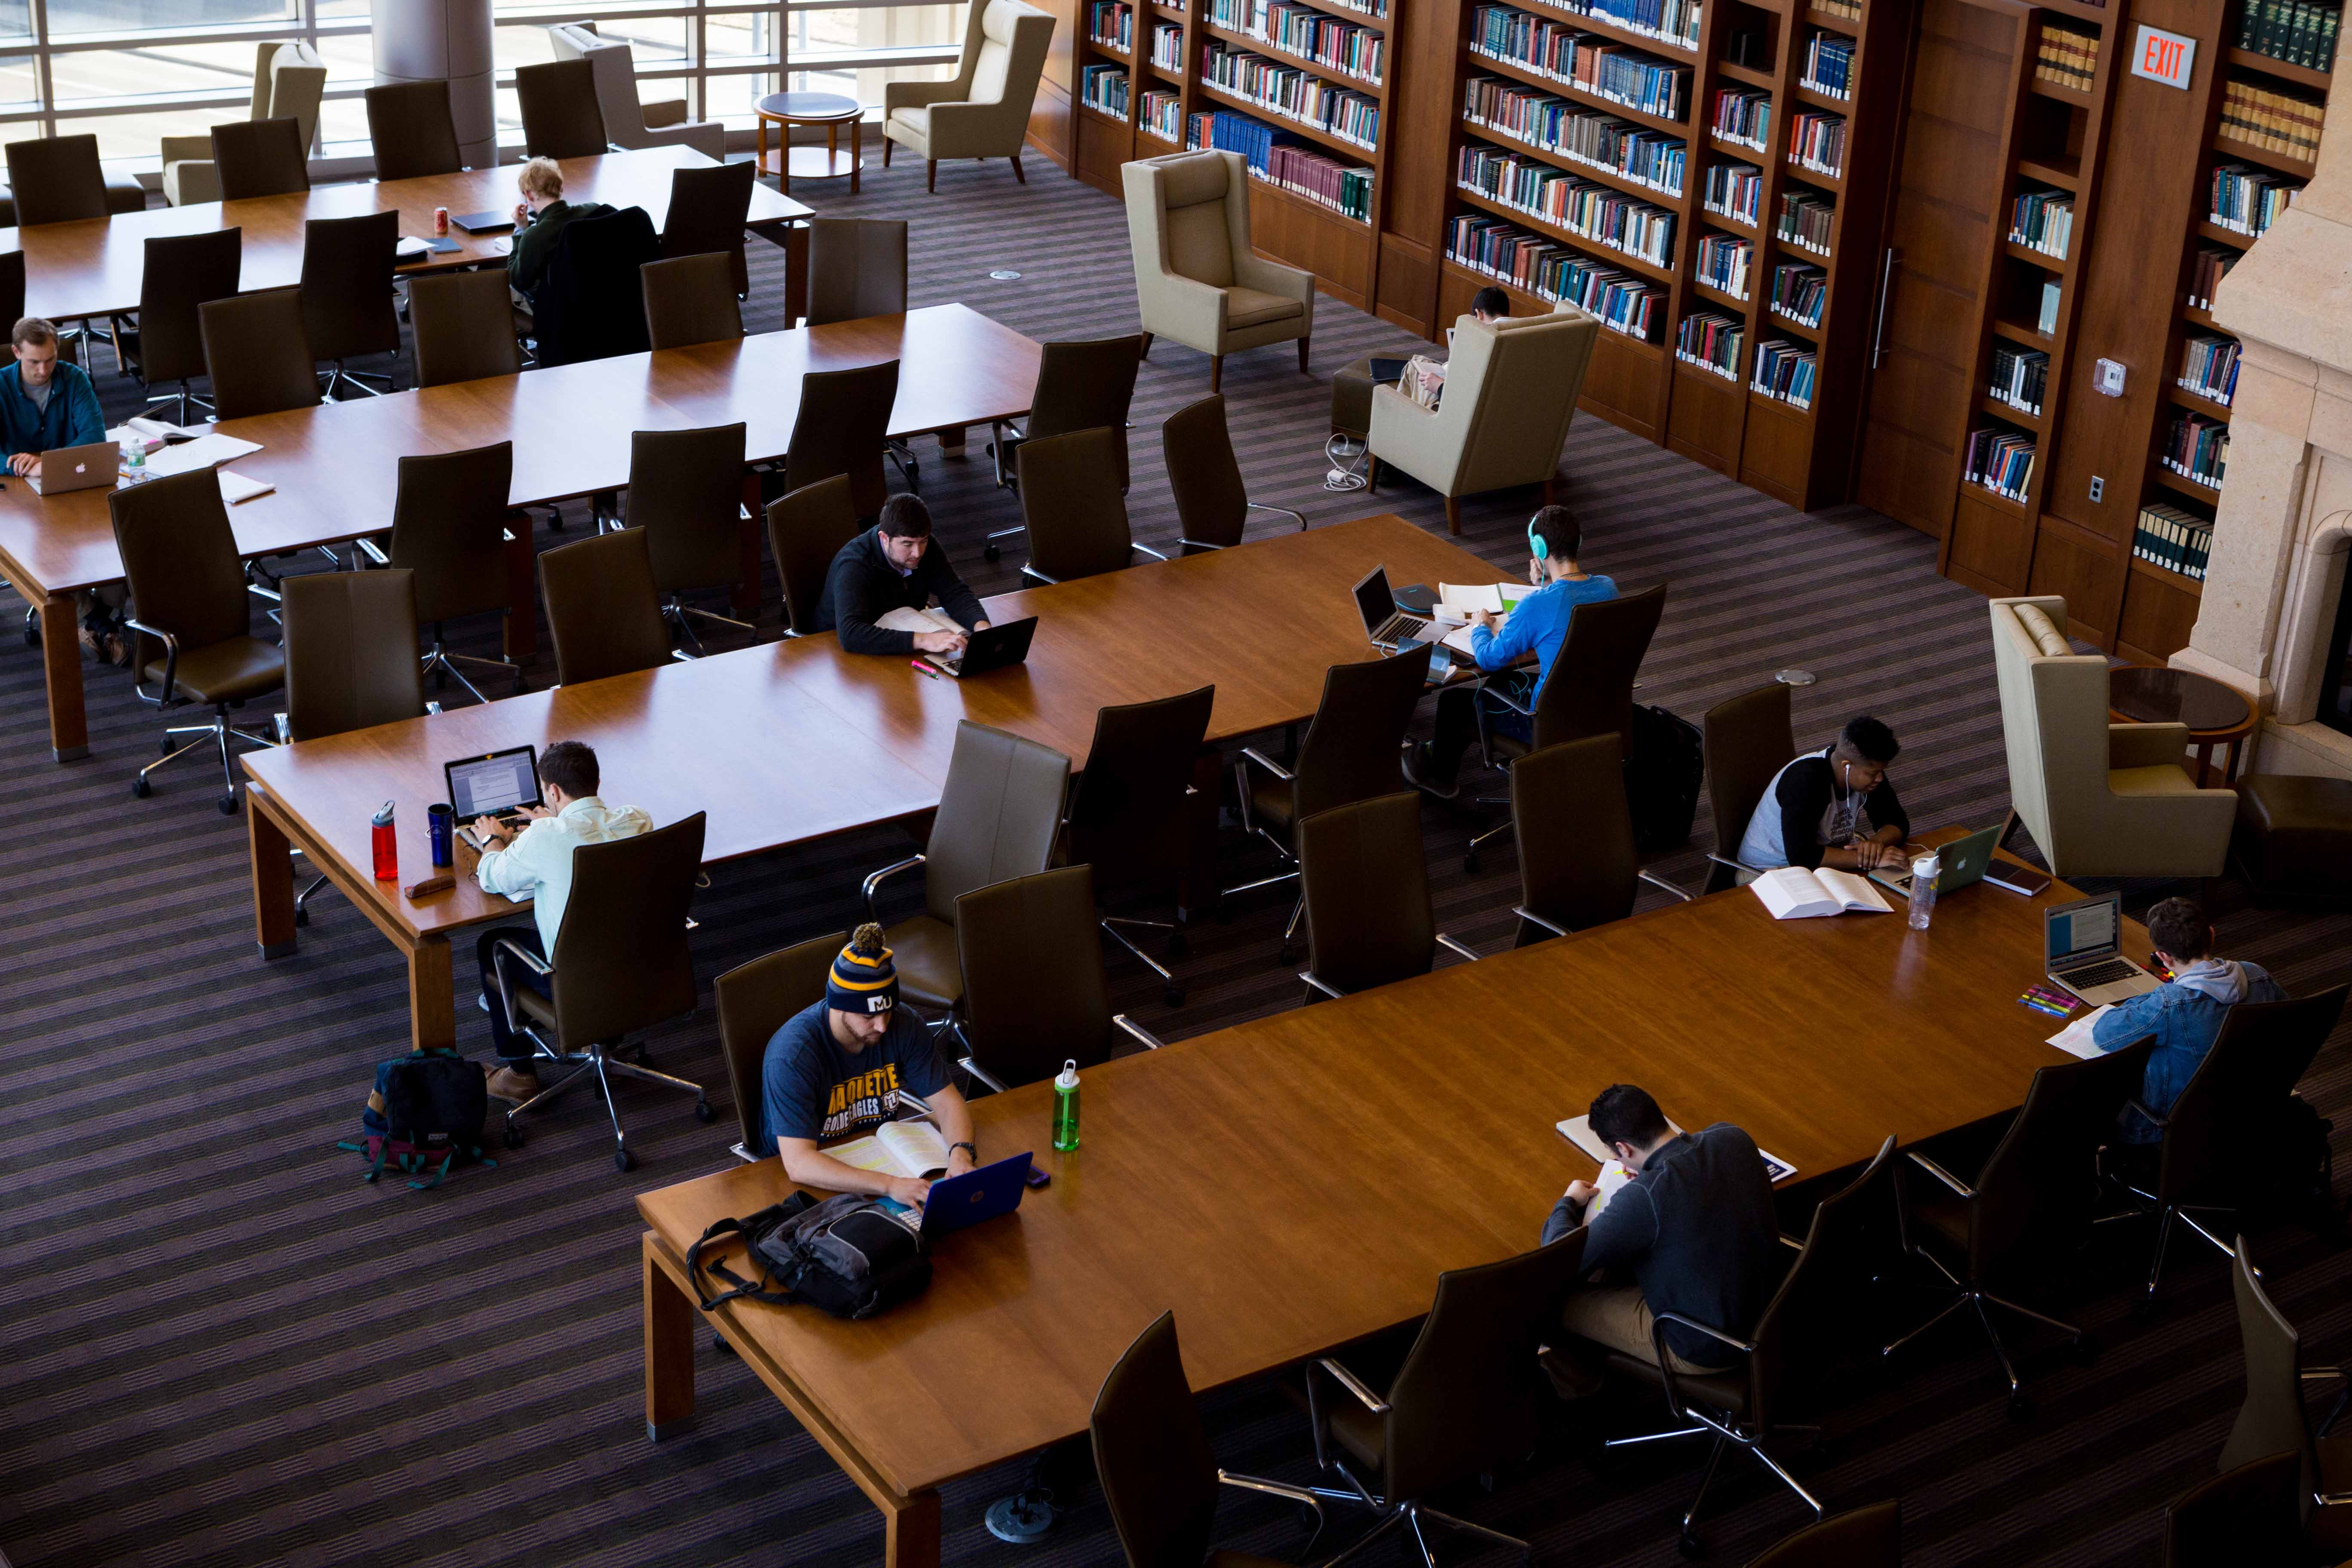 Marquette law students study in the reading room of Eckstein Hall.